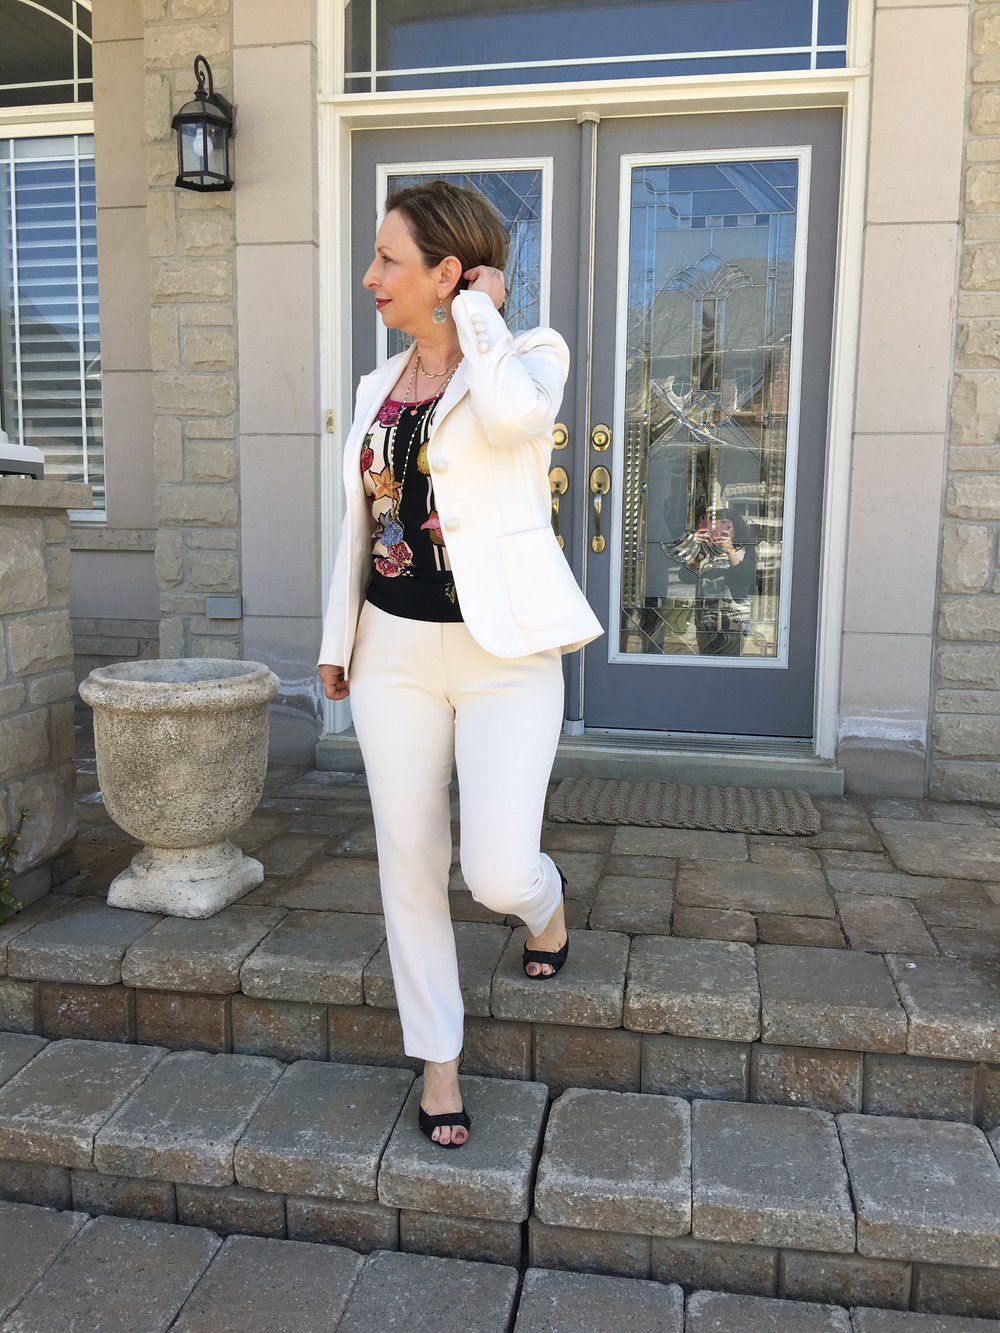 You can be polished, fashionable and comfortable at the same time.  The fabric of this suit moves as easily as a yoga pant.  Though I chose a heel, I could have paired it with a ballet flat for easy walking--or even running--all day long.